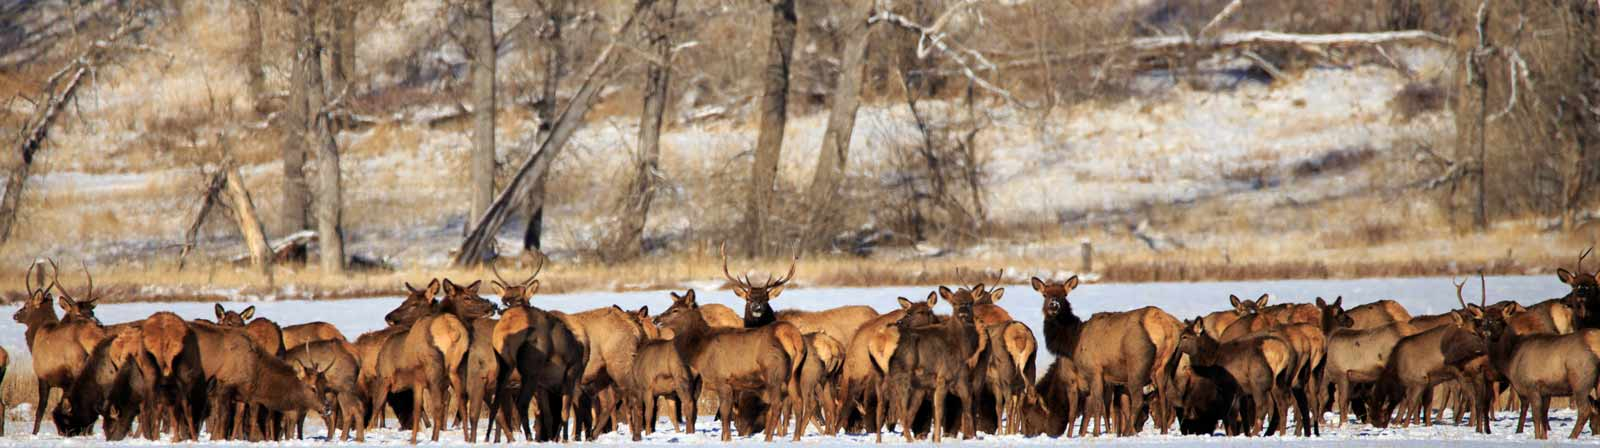 mt-chapter-the-wildlife-society-elk-herd1-